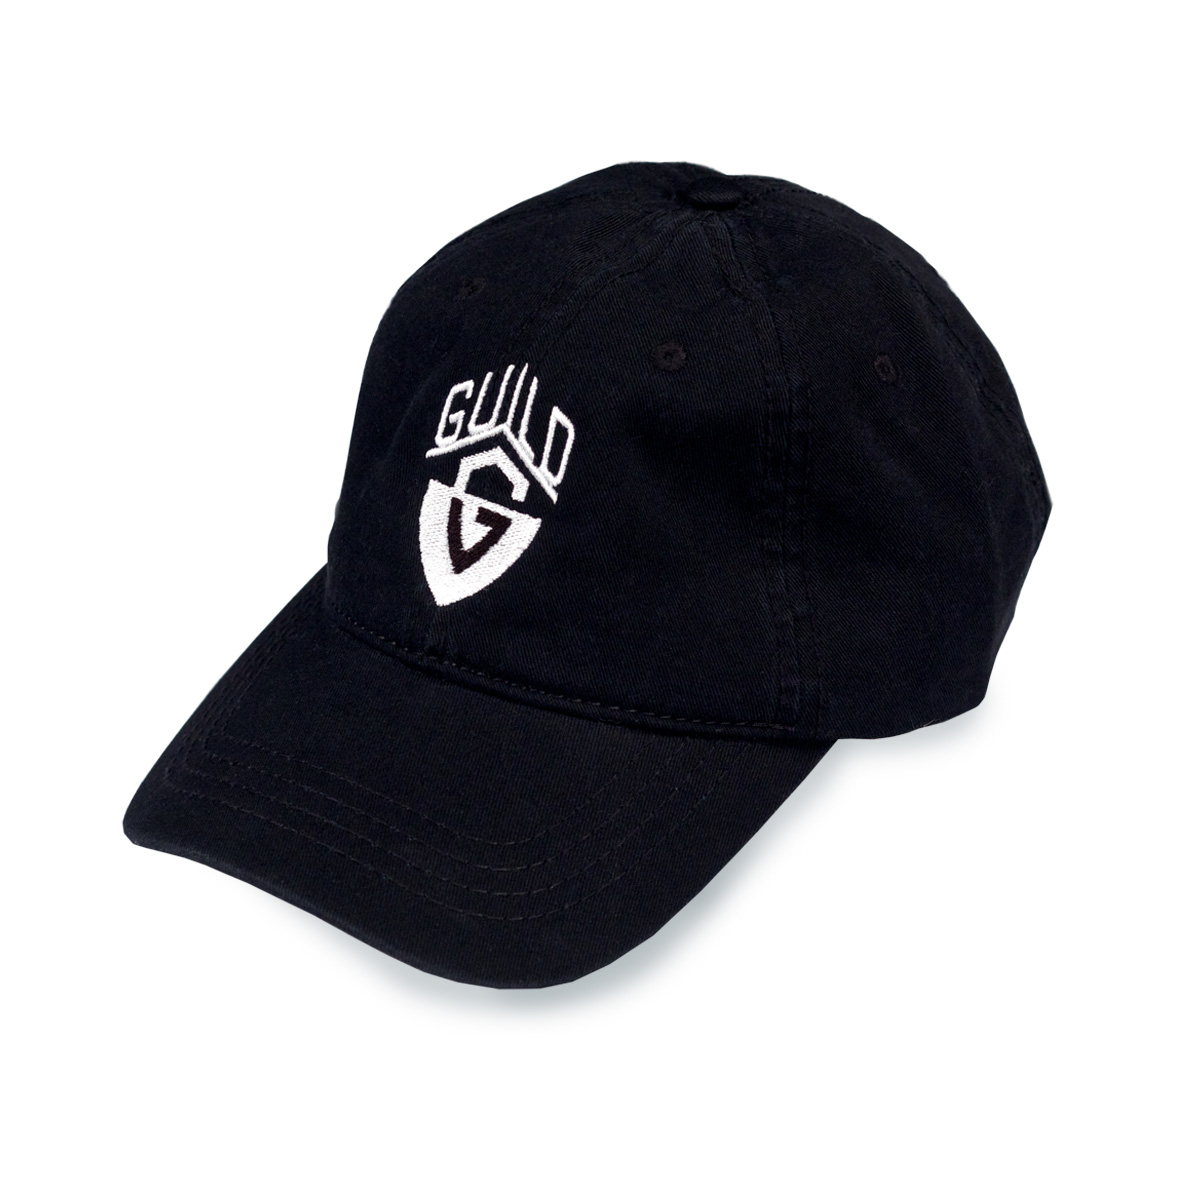 5c937908dd0 Baseball Hat - Relaxed Fit